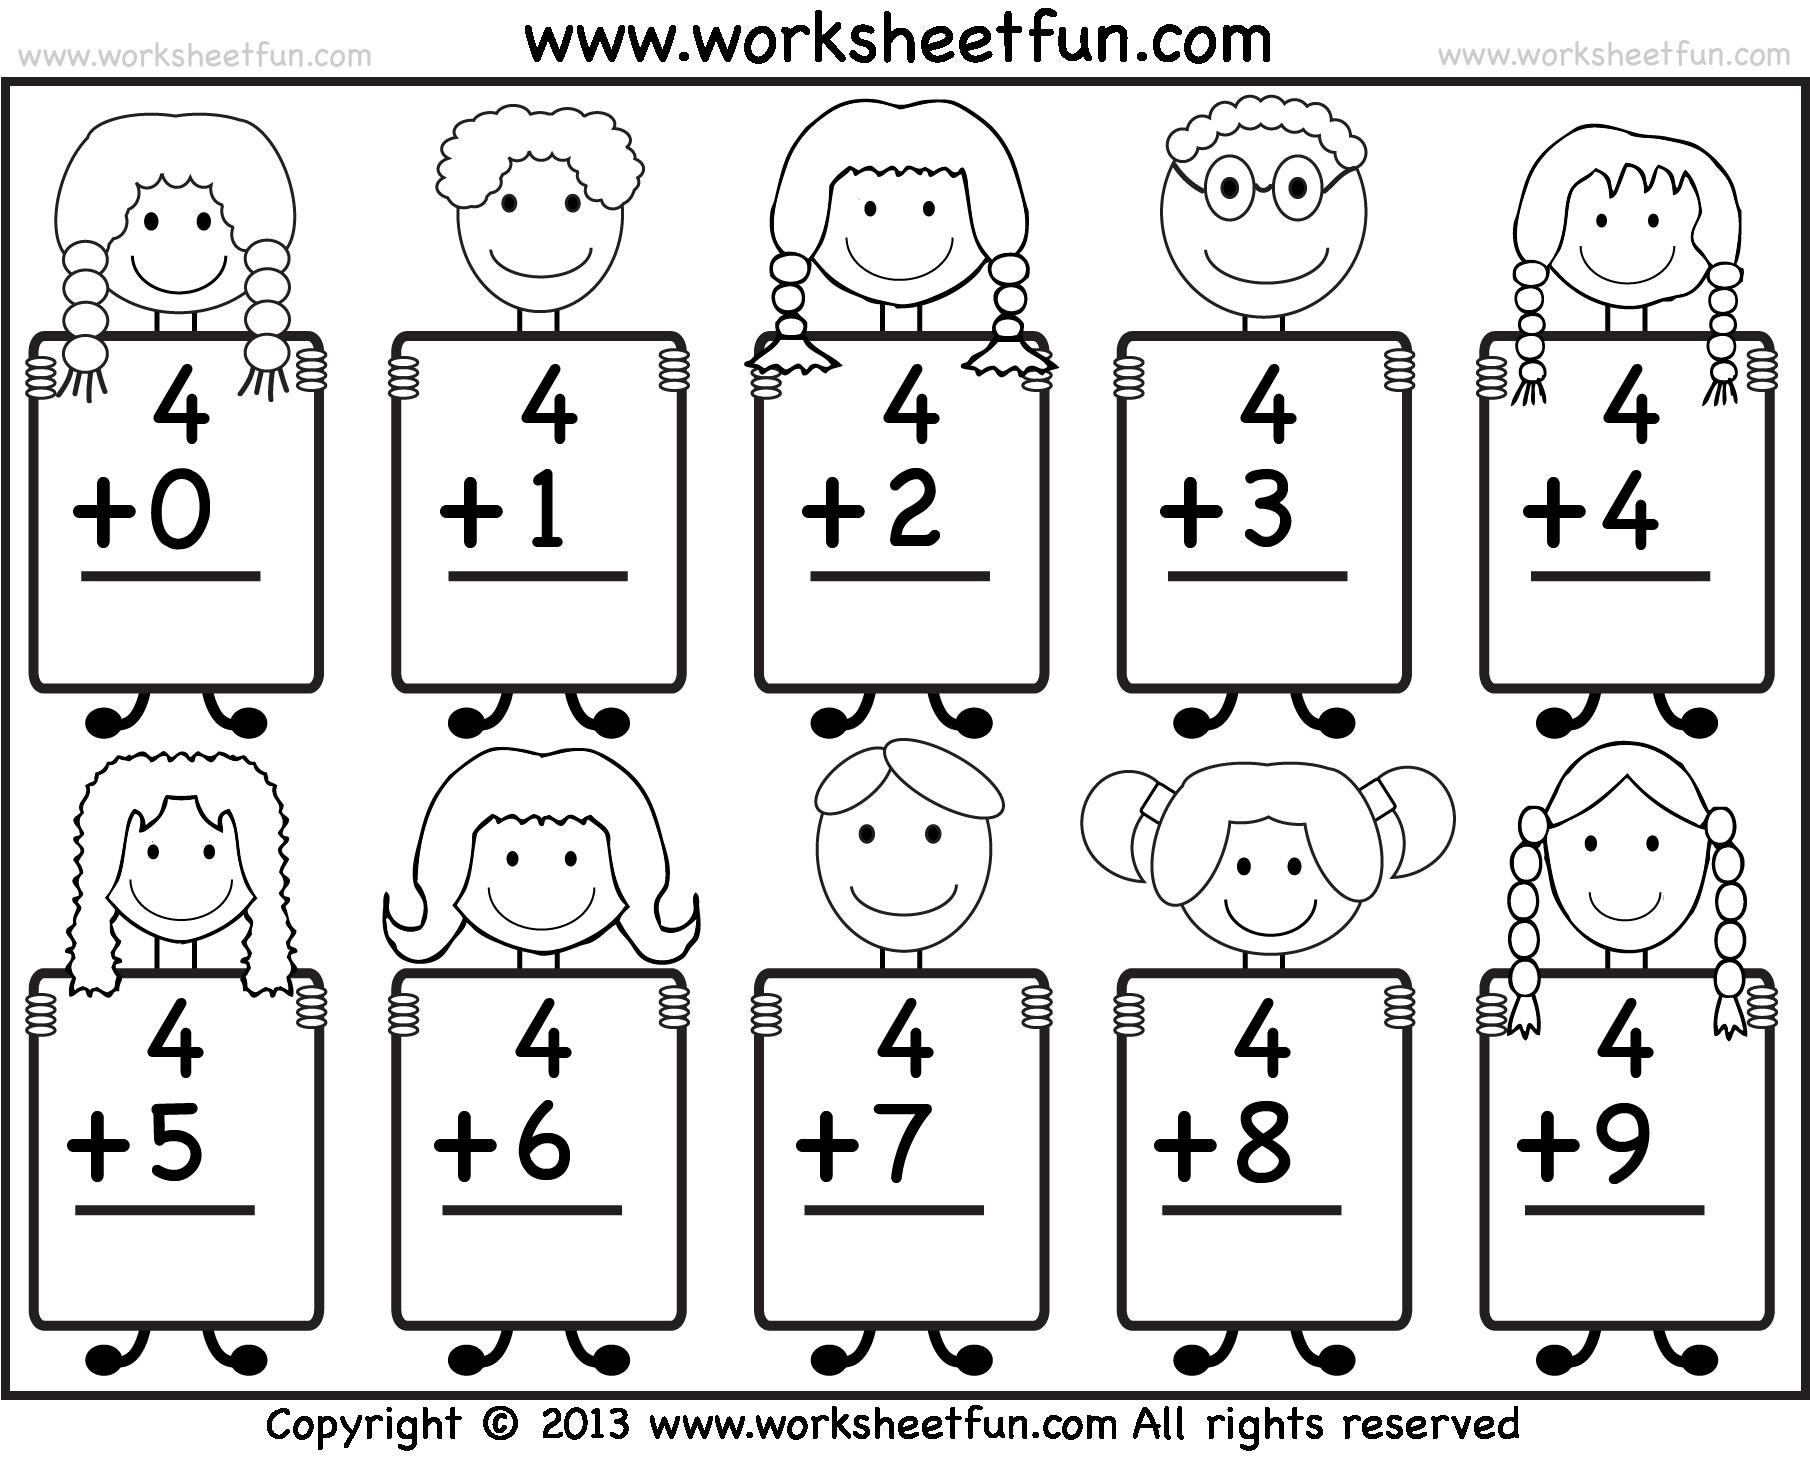 freeprintablemathworksheetsforkindergartenaddition1png – Free Math Fact Worksheets